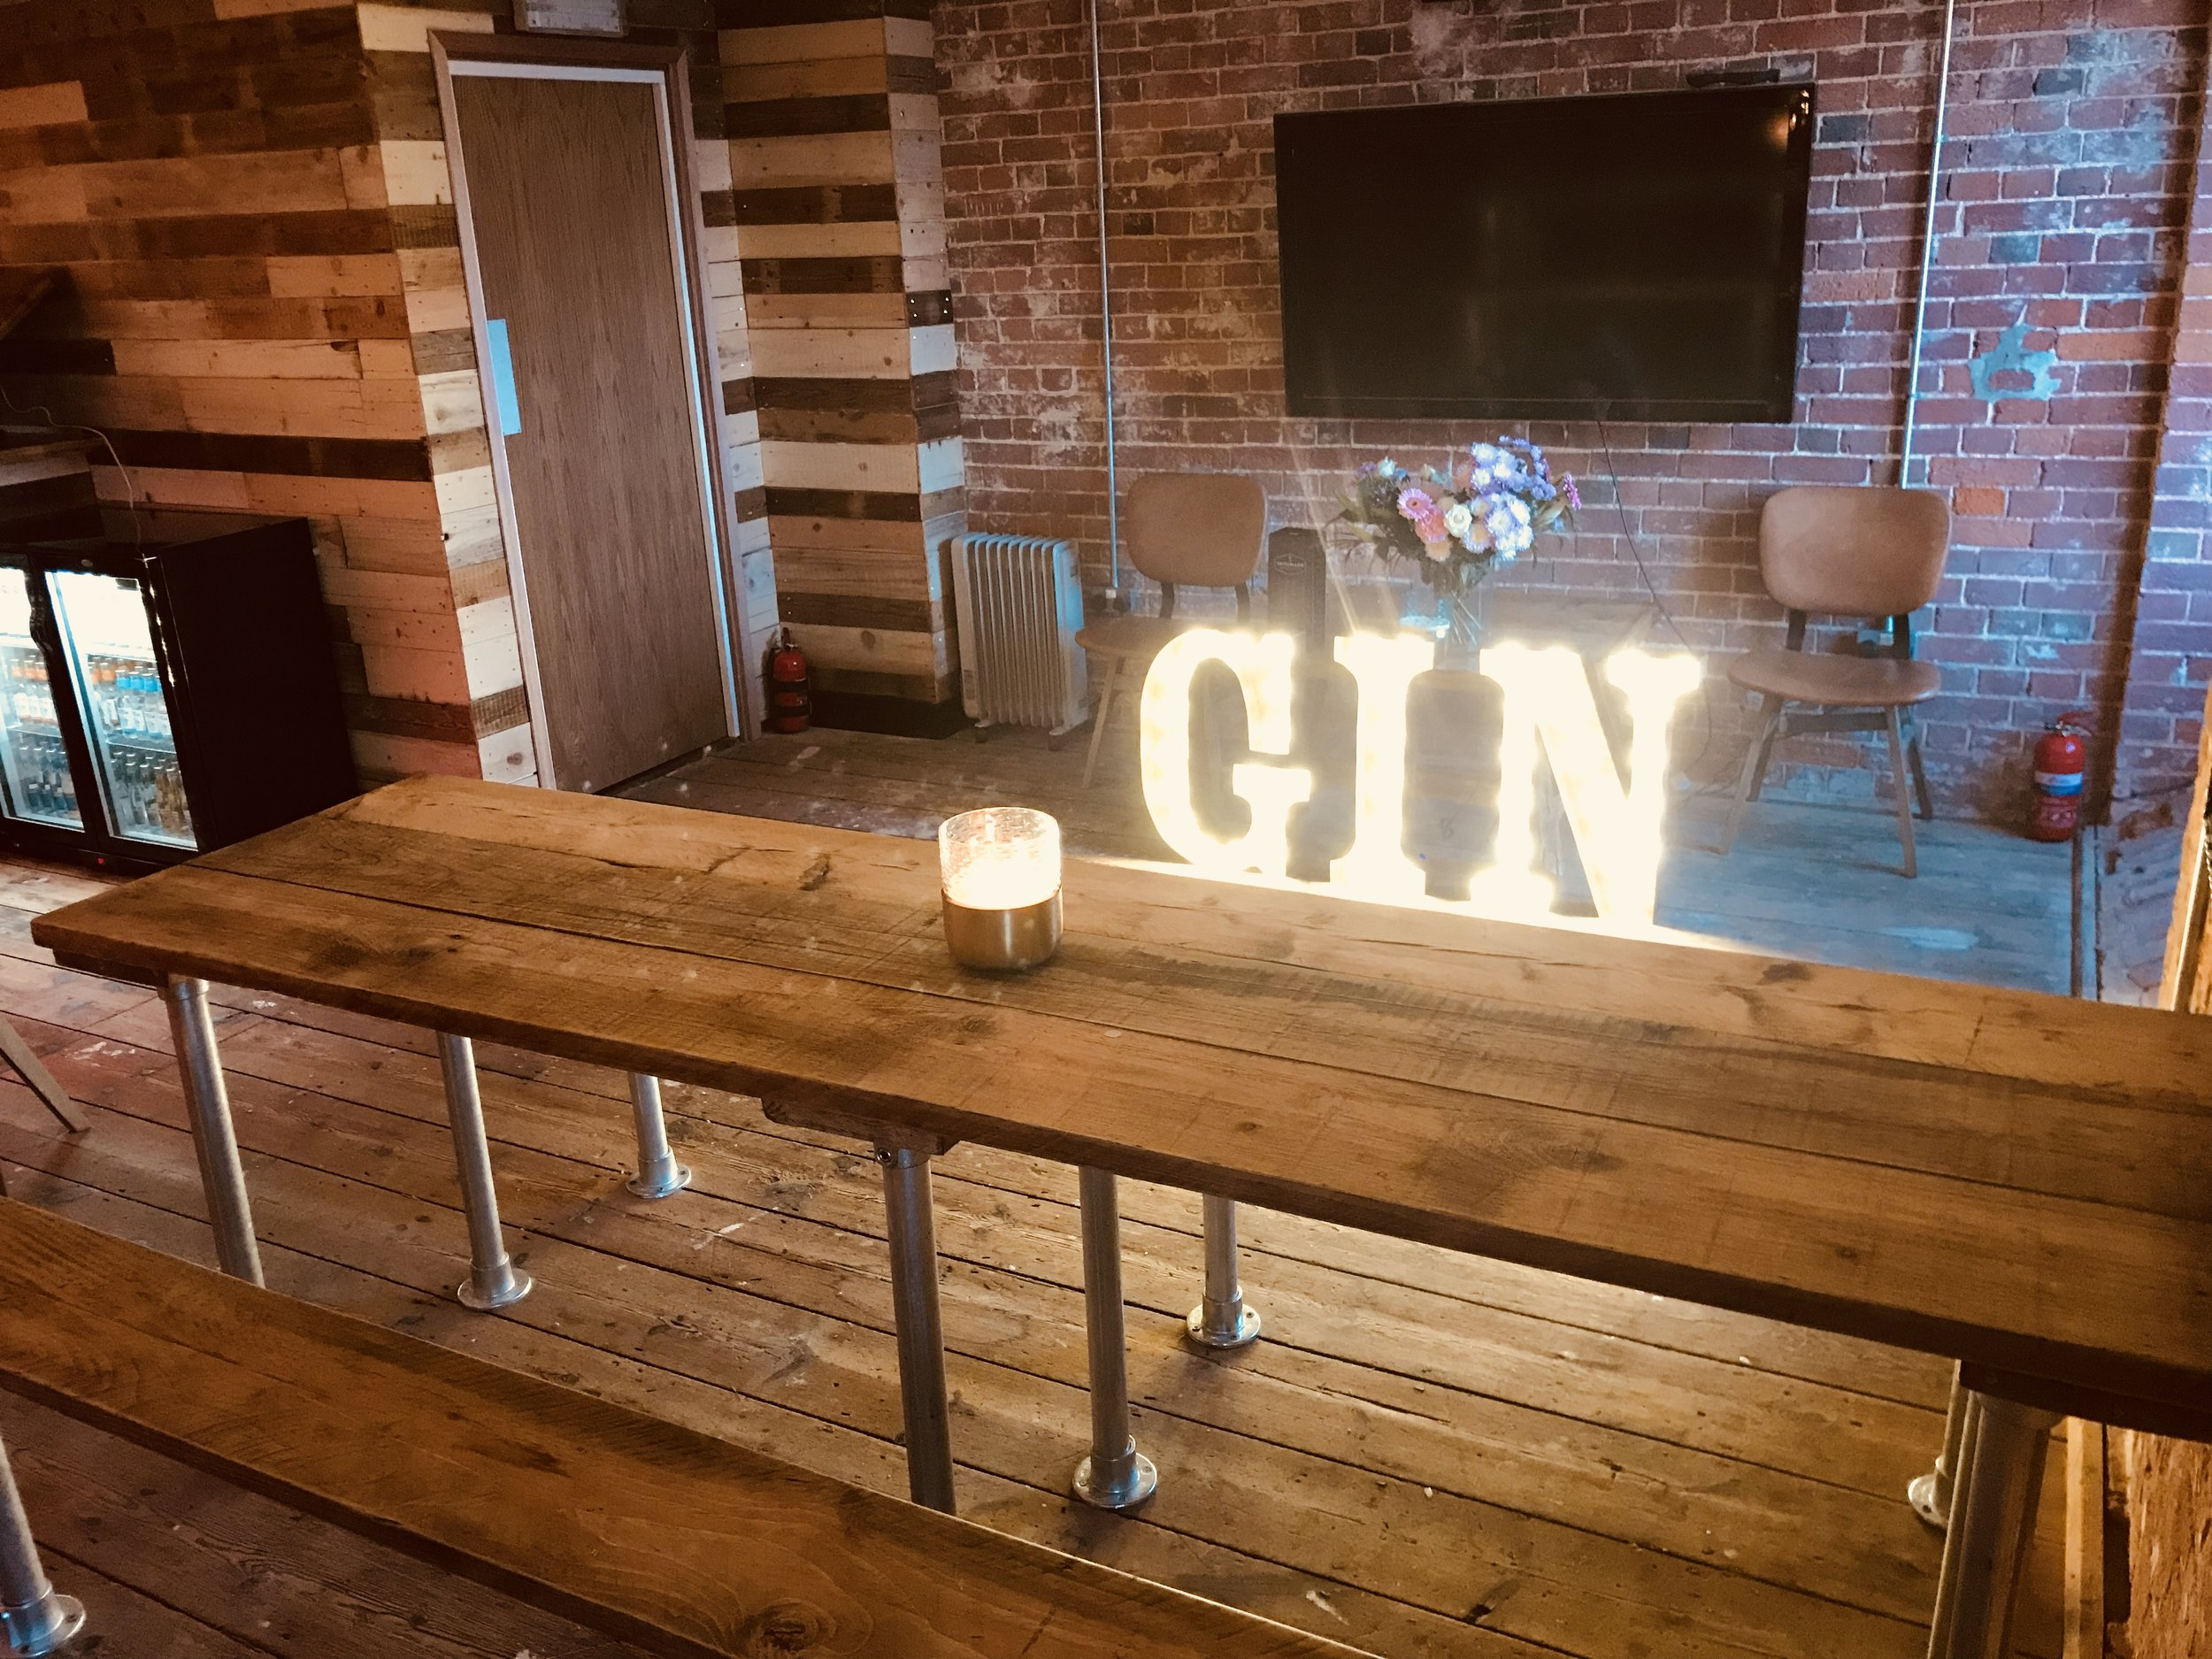 Gosport's best bar. The Gin Joint at The Victualler, Royal Clarence Marina, Gosport